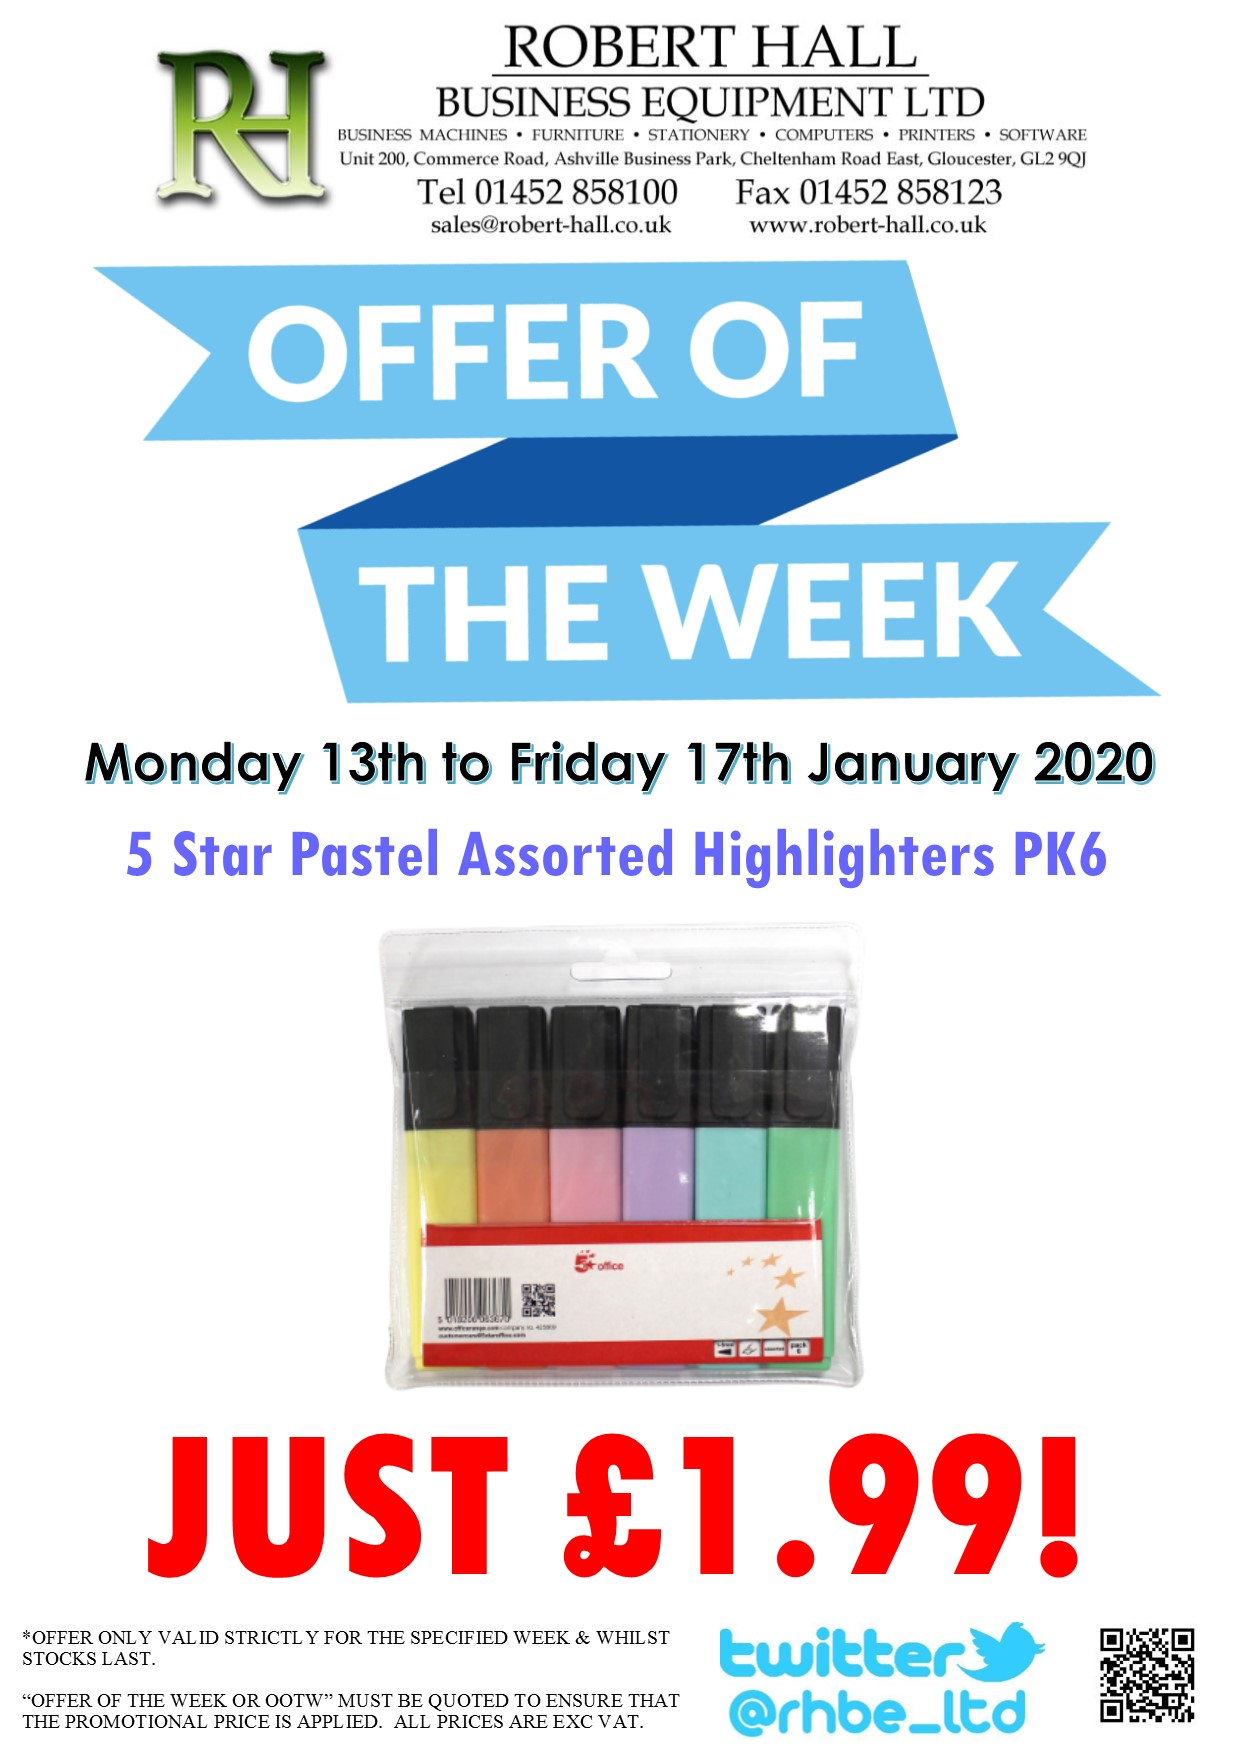 Offer Of The Week: 5 Star Pastel Asst Highlighters PK6